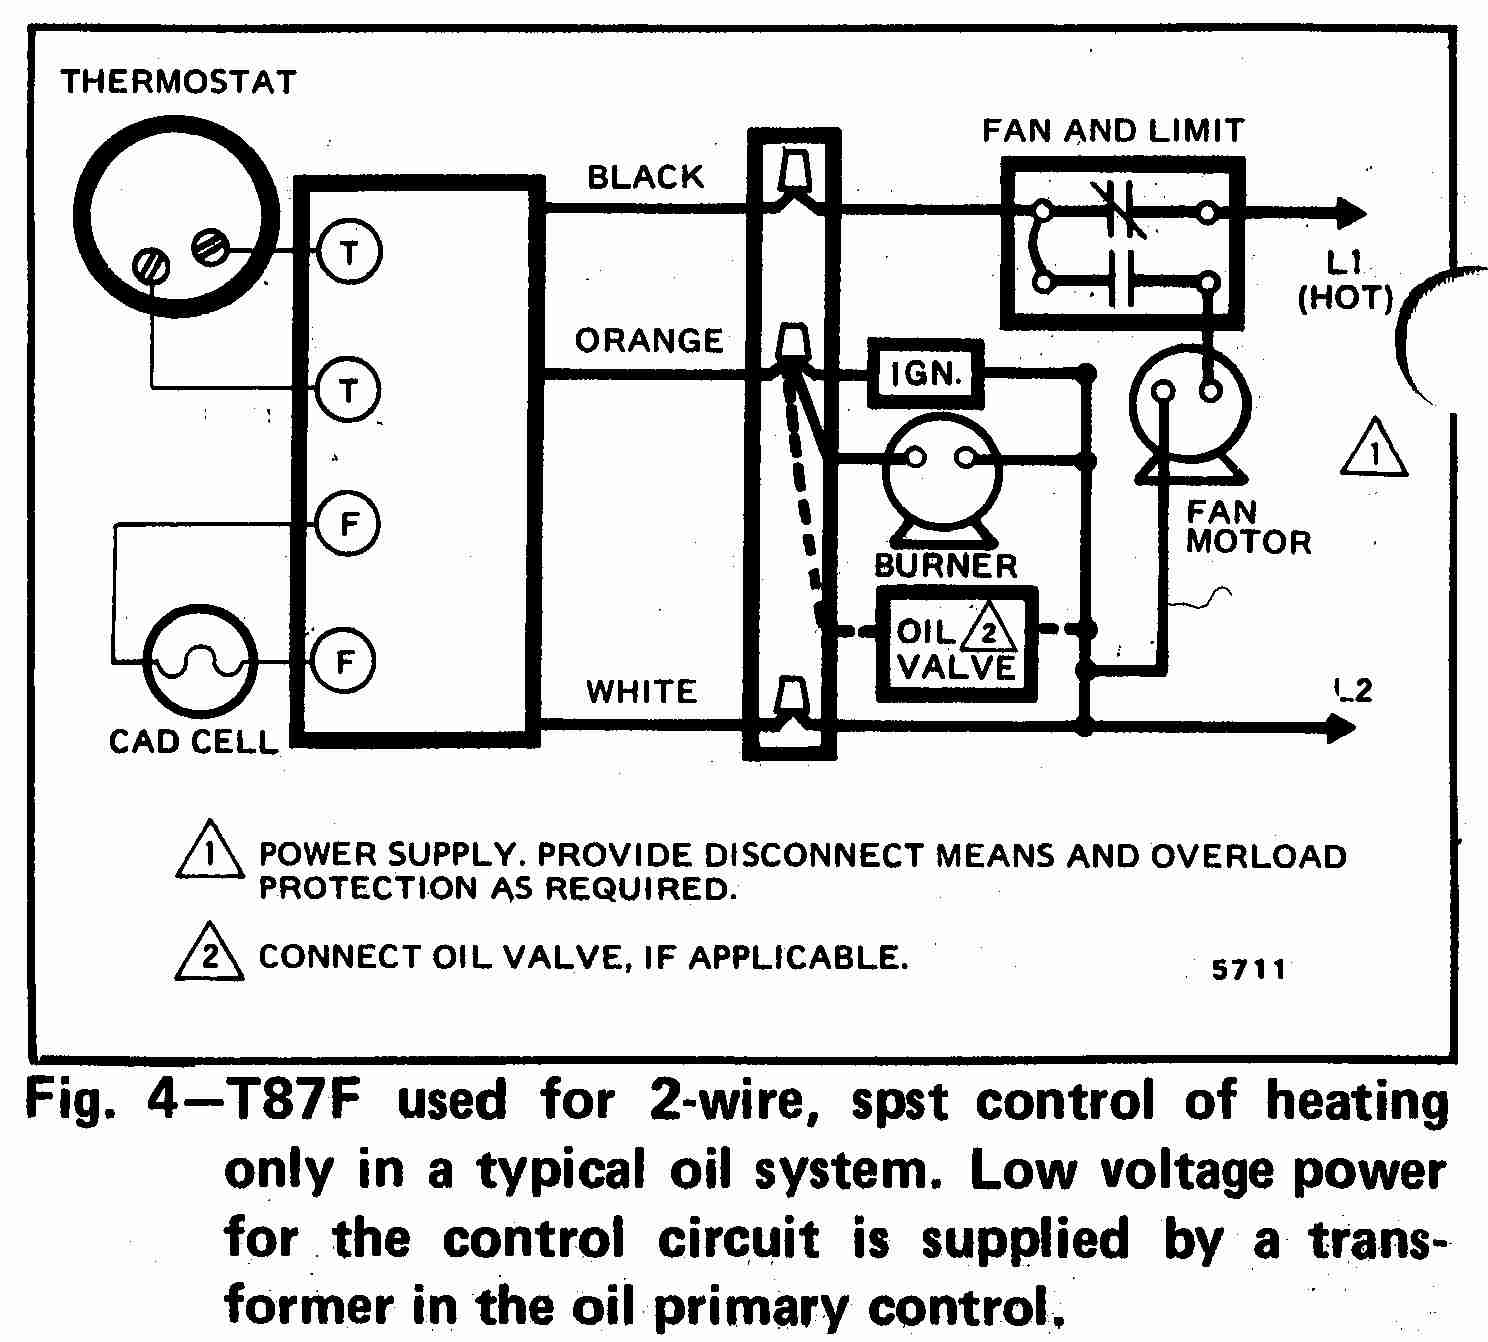 TT_T87F_0002_2W_DJF room thermostat wiring diagrams for hvac systems imit boiler thermostat wiring diagram at reclaimingppi.co